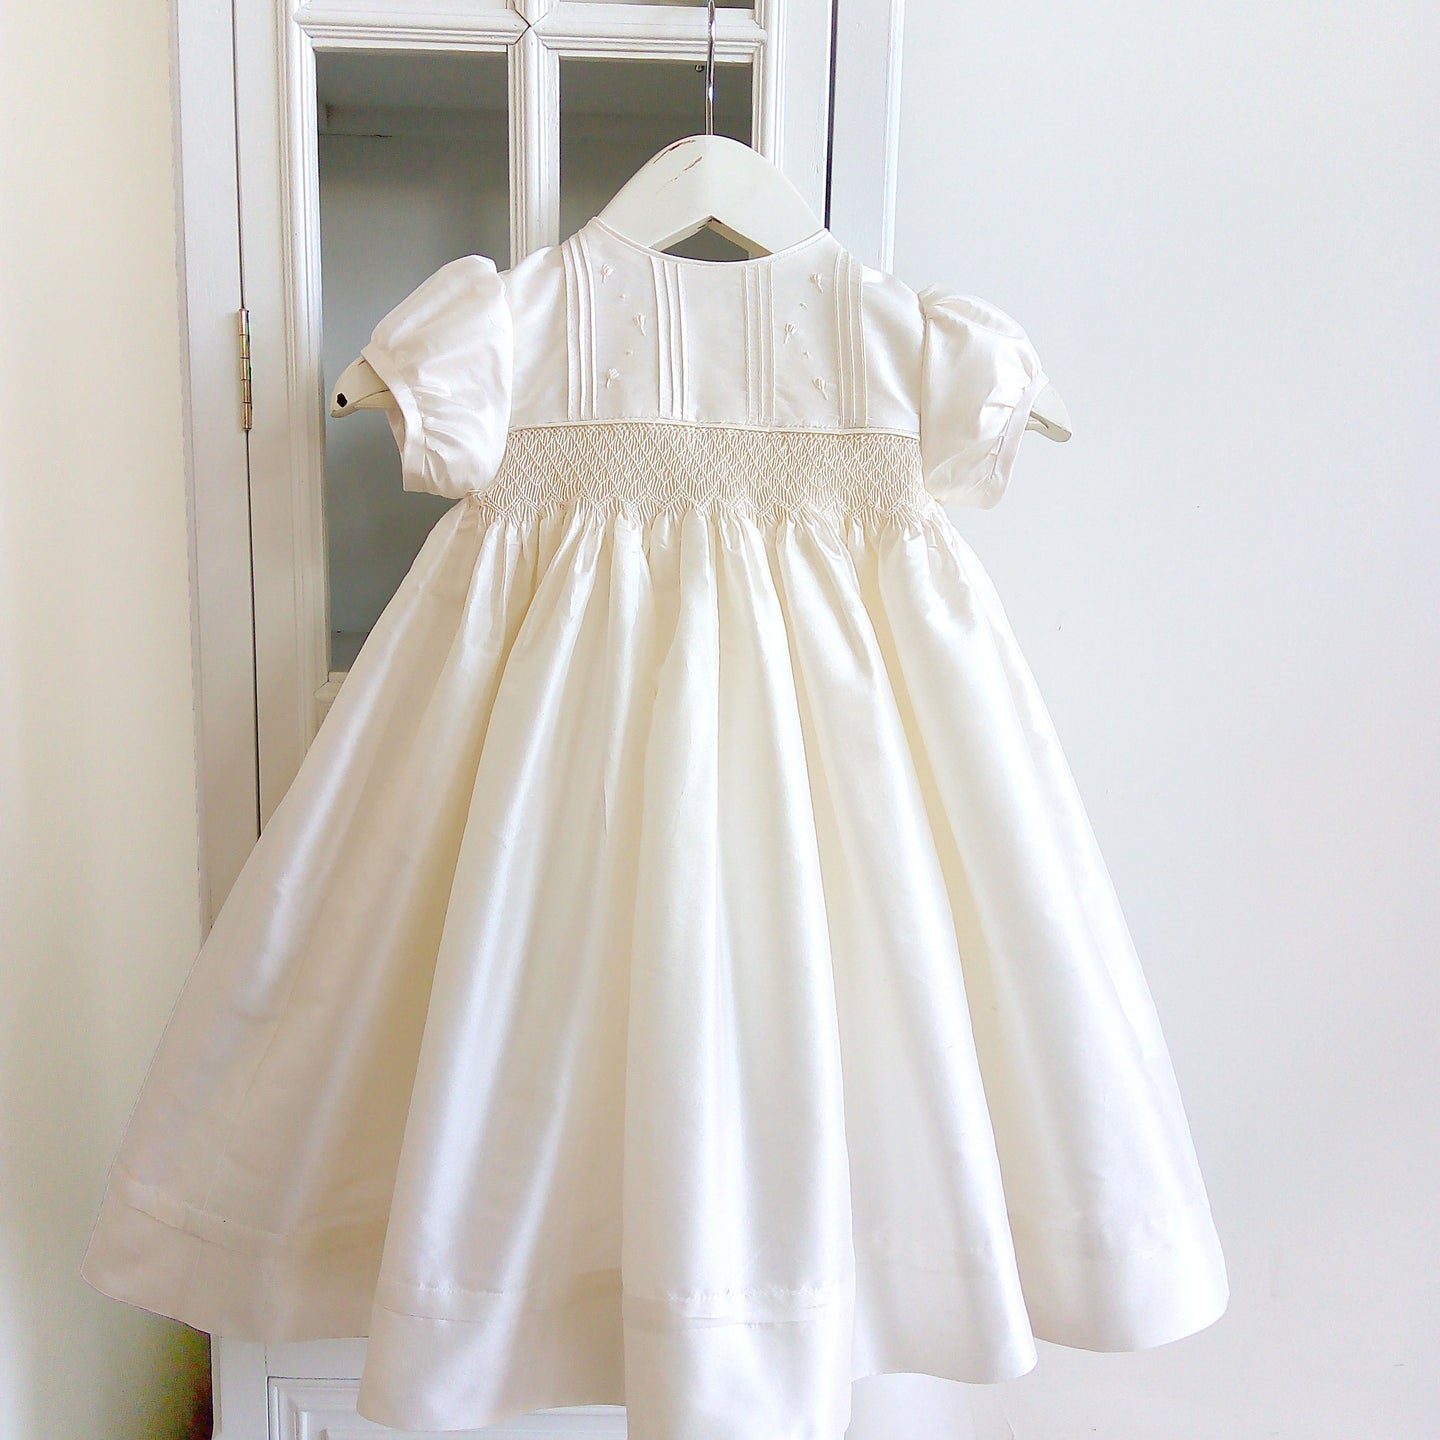 antigone-girls-christening-dress